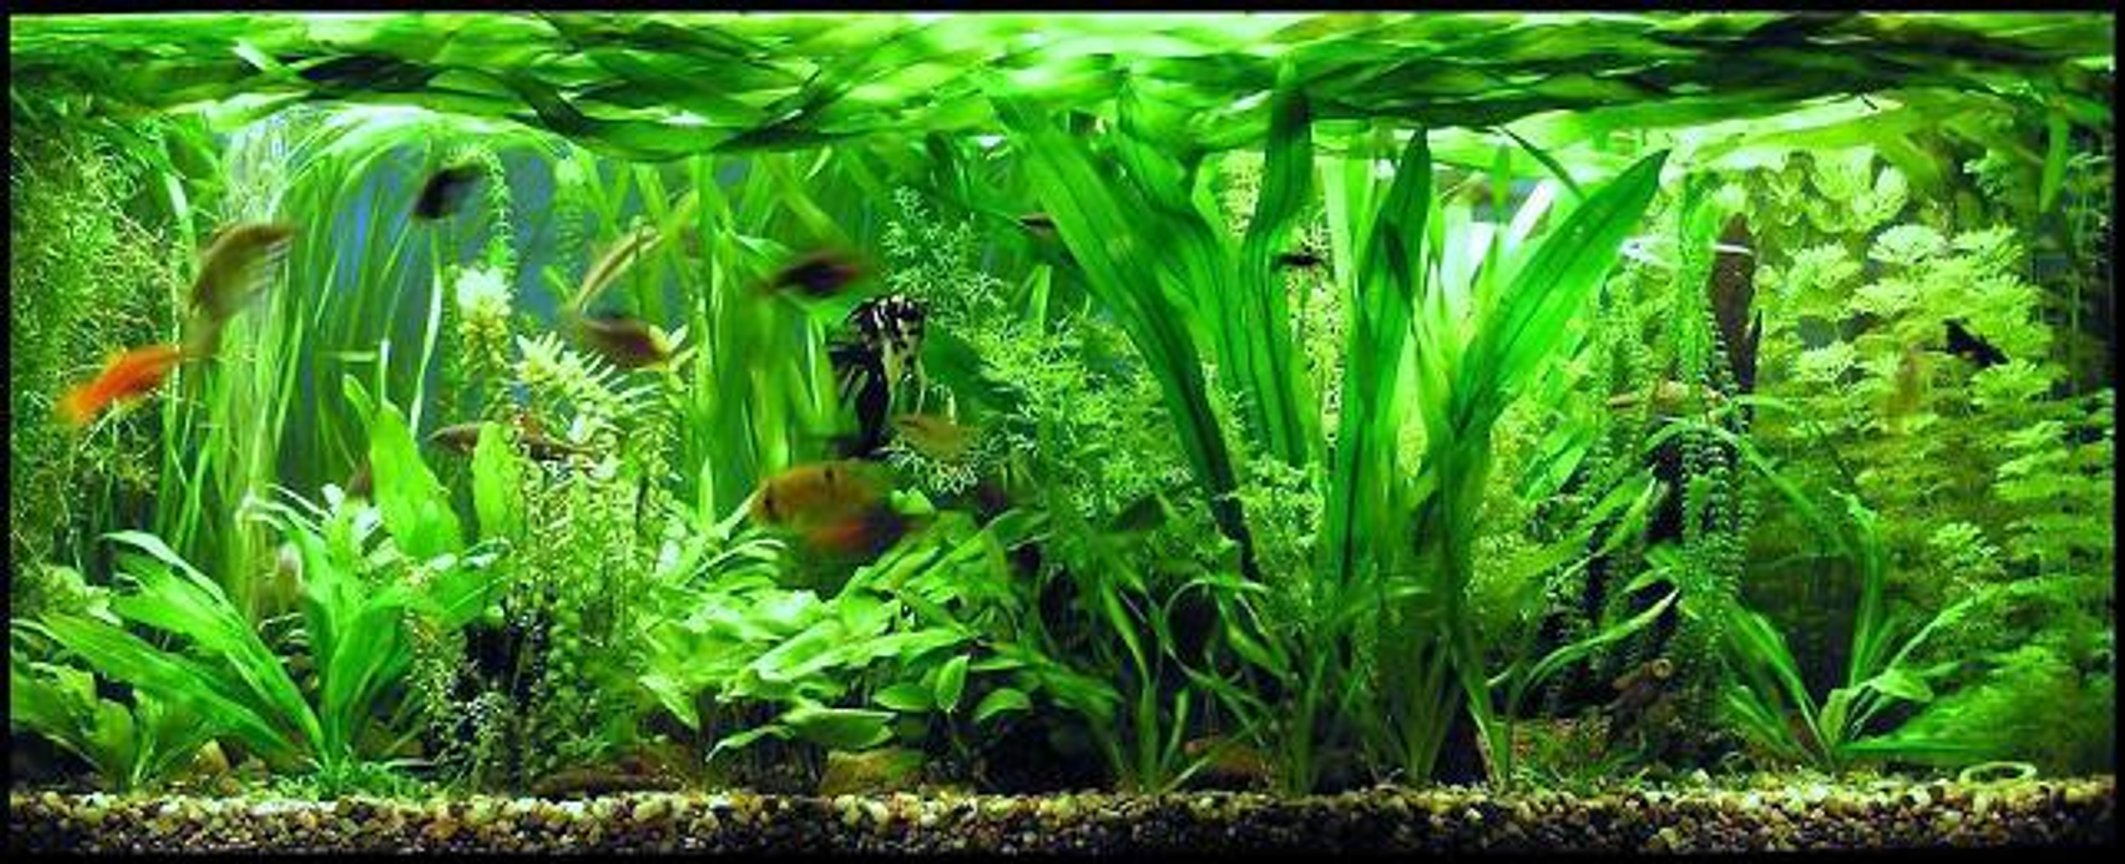 planted tank (mostly live plants and fish) - Size: 130x50x50cm; Lighting: 3x 36 W OSRAM LUMILUX PLUS ECO; CO2 System: none !!!;